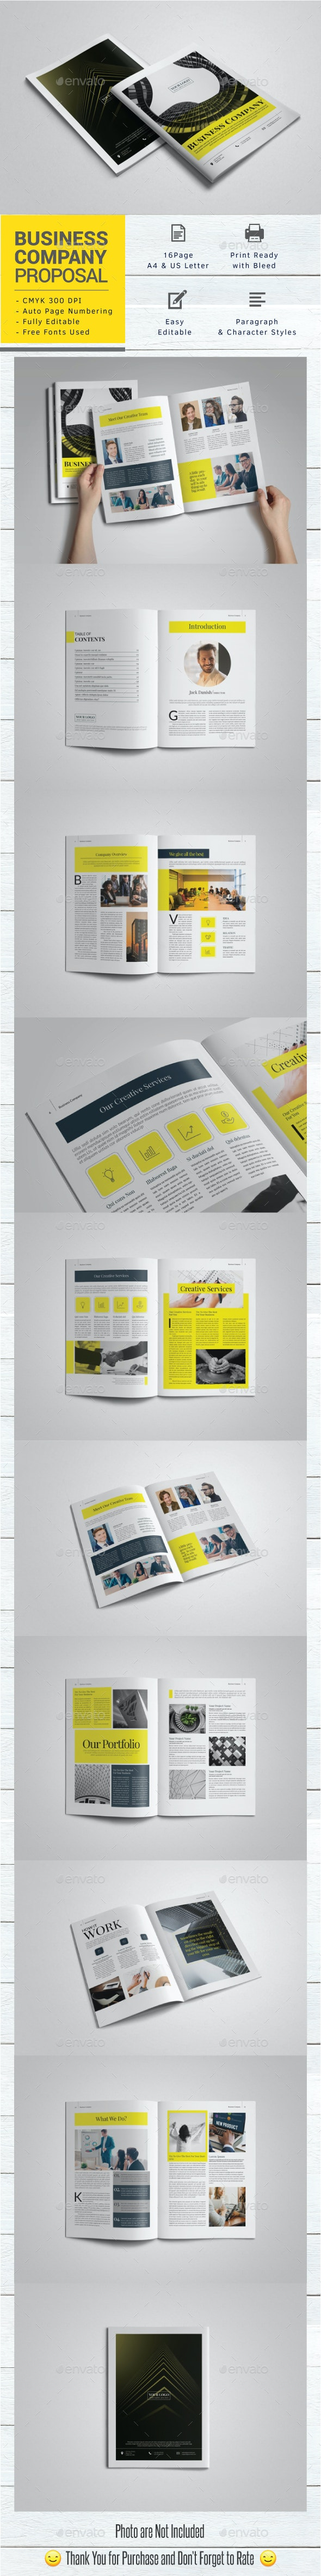 Business Company Proposal - Brochures Print Templates